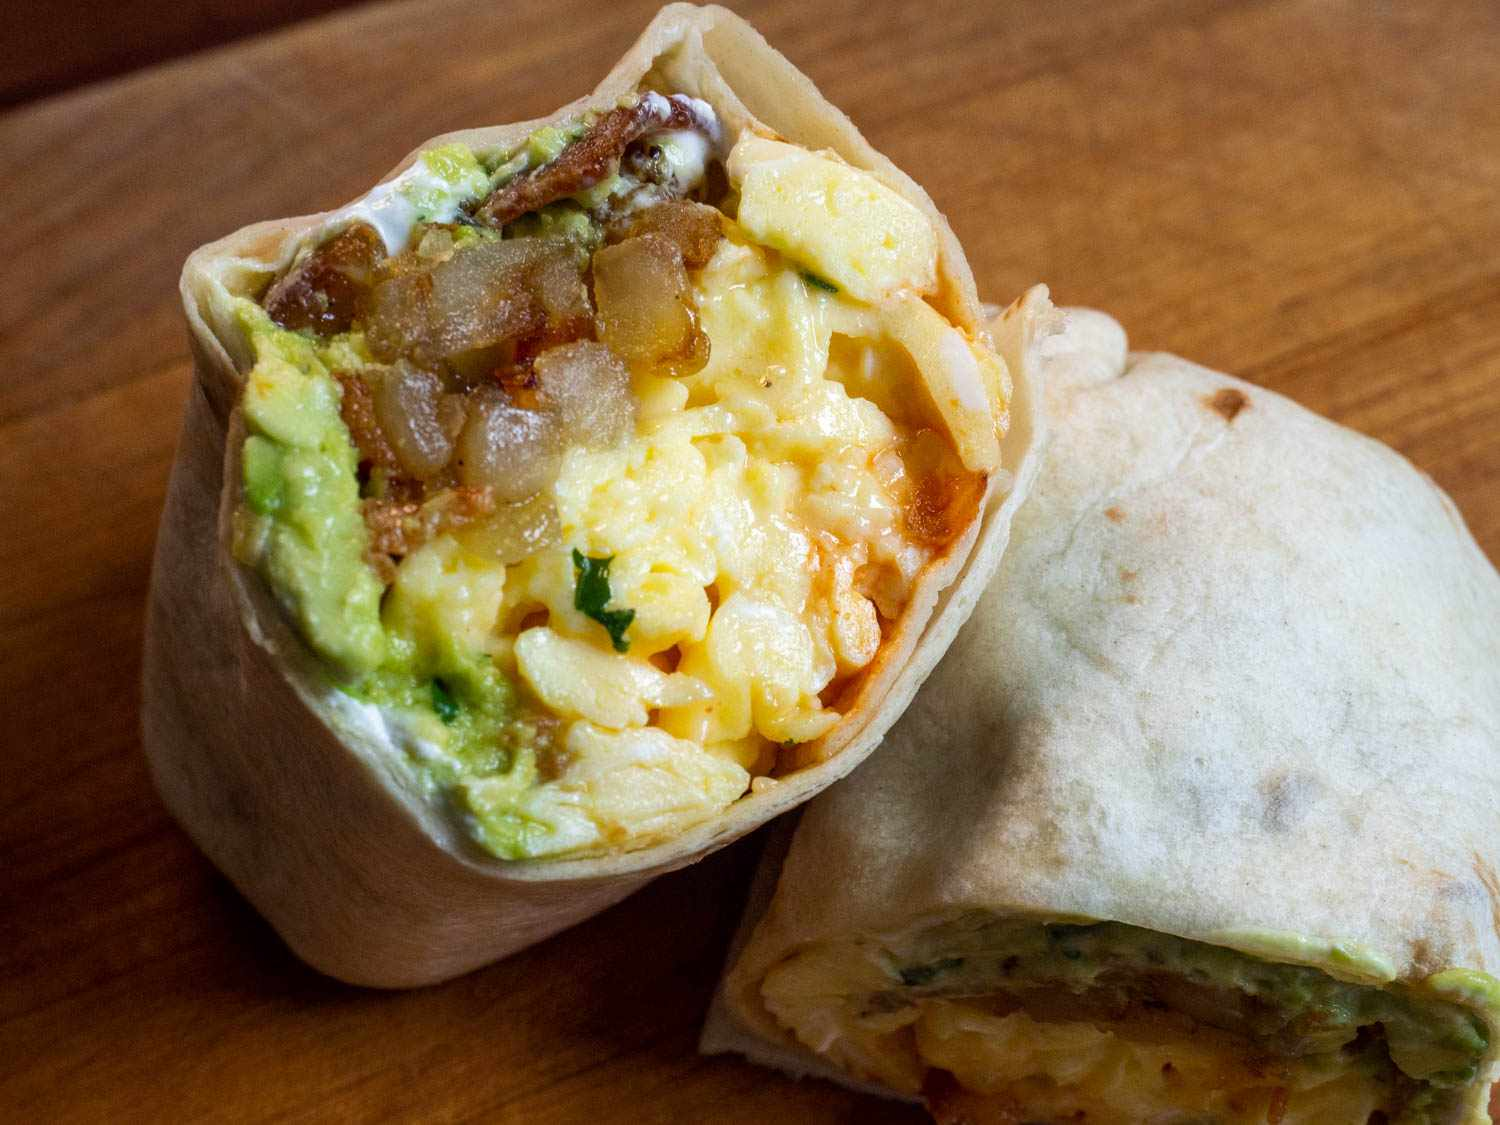 A bacon egg and cheese breakfast burrito sliced in half to show the interior, which includes tender eggs, guacamole, sour cream, potato hash, bacon, melted cheese, and hot sauce